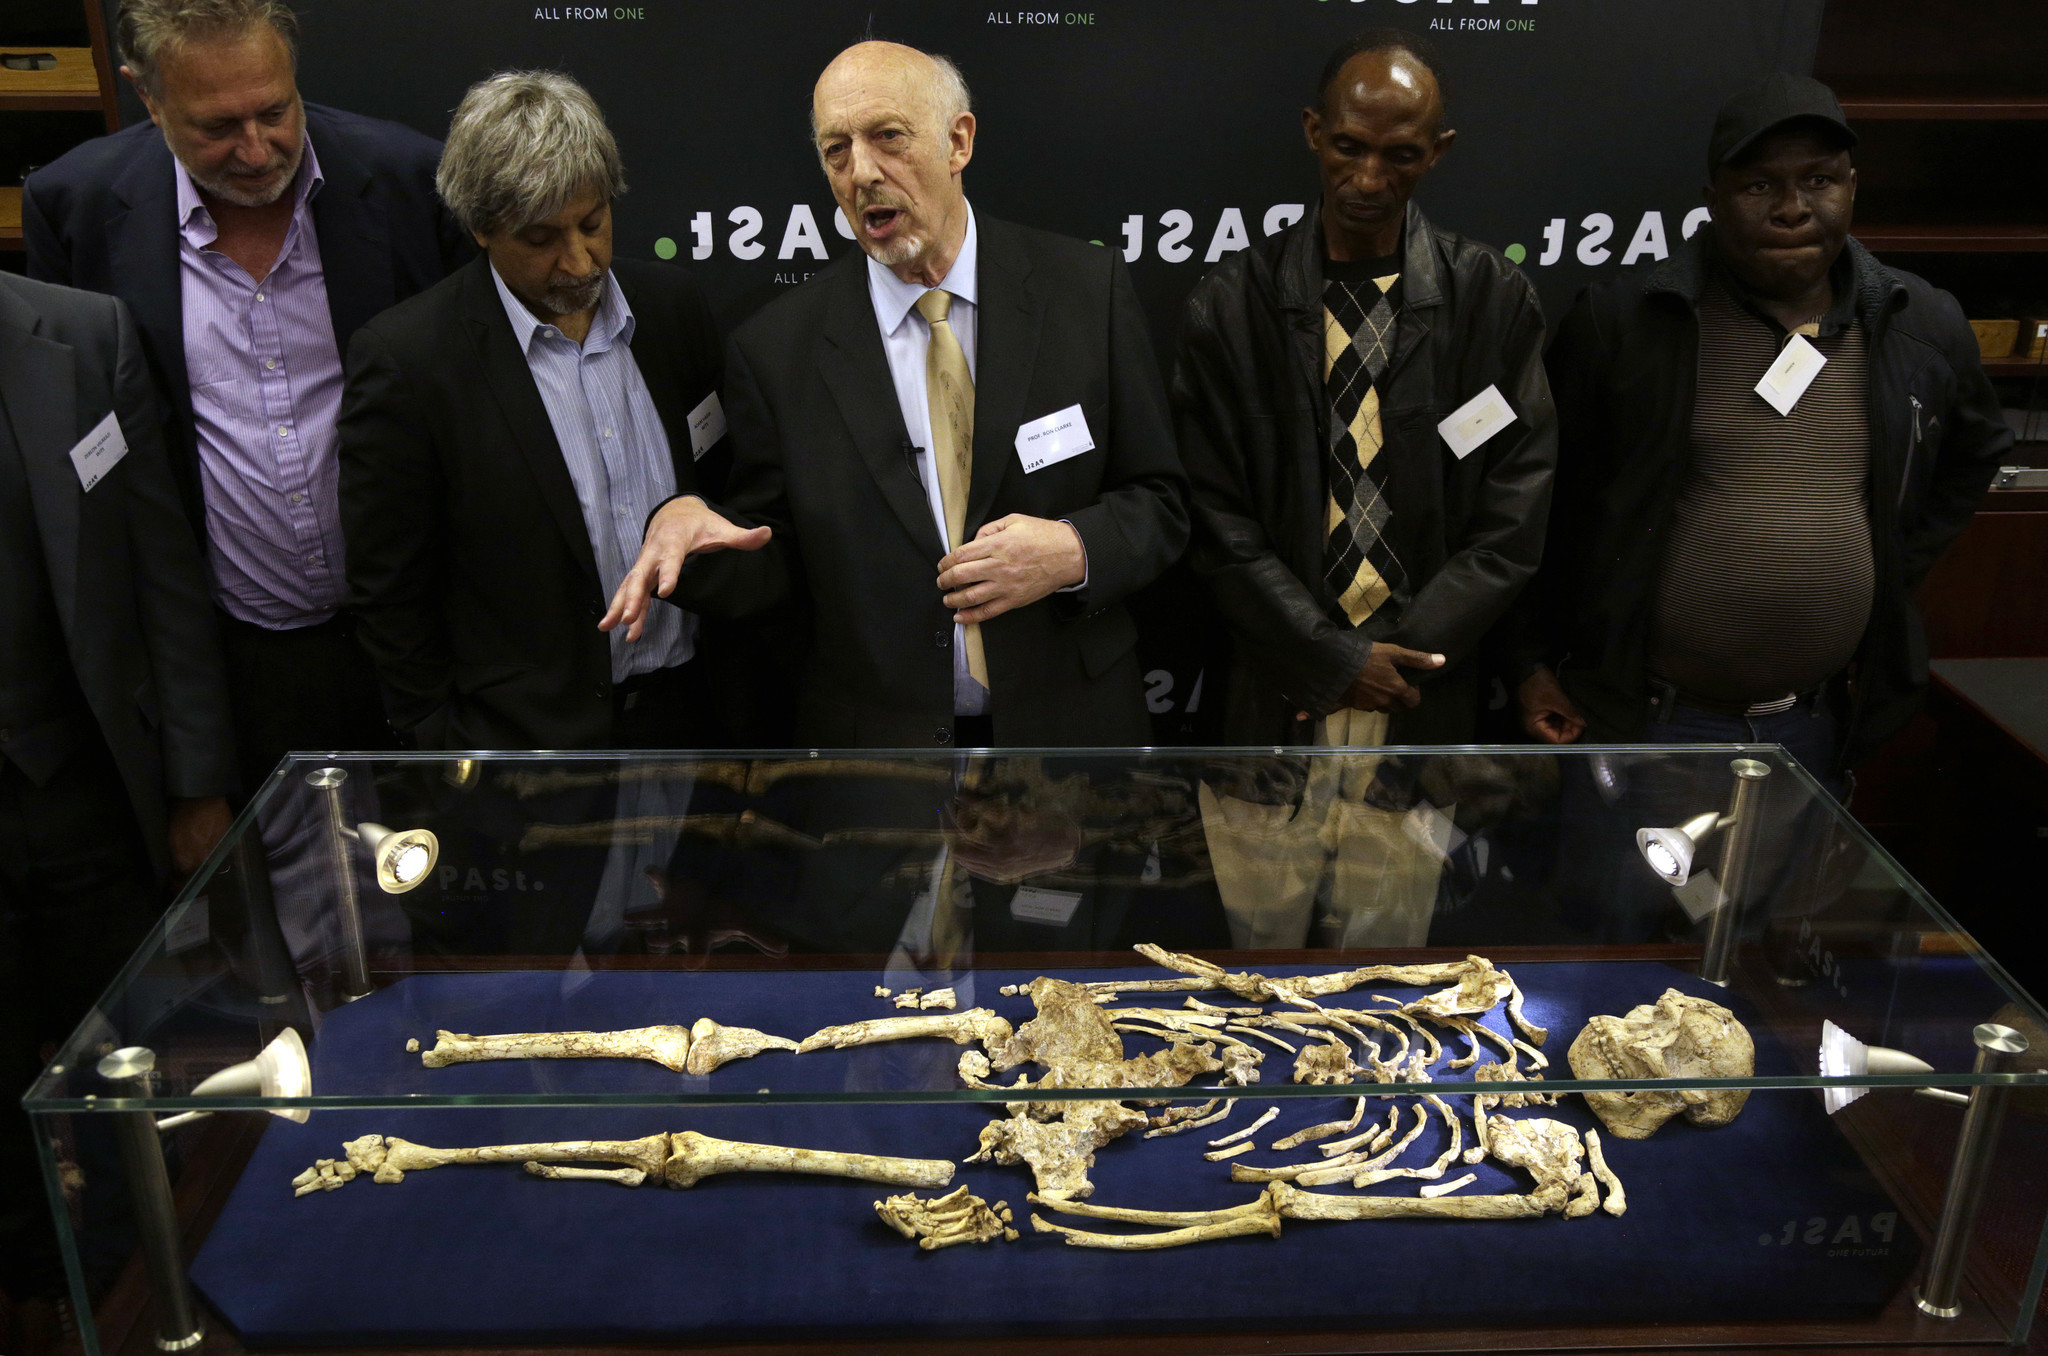 Researchers unveil rare skeleton of human ancestor from 3.6 million years ago